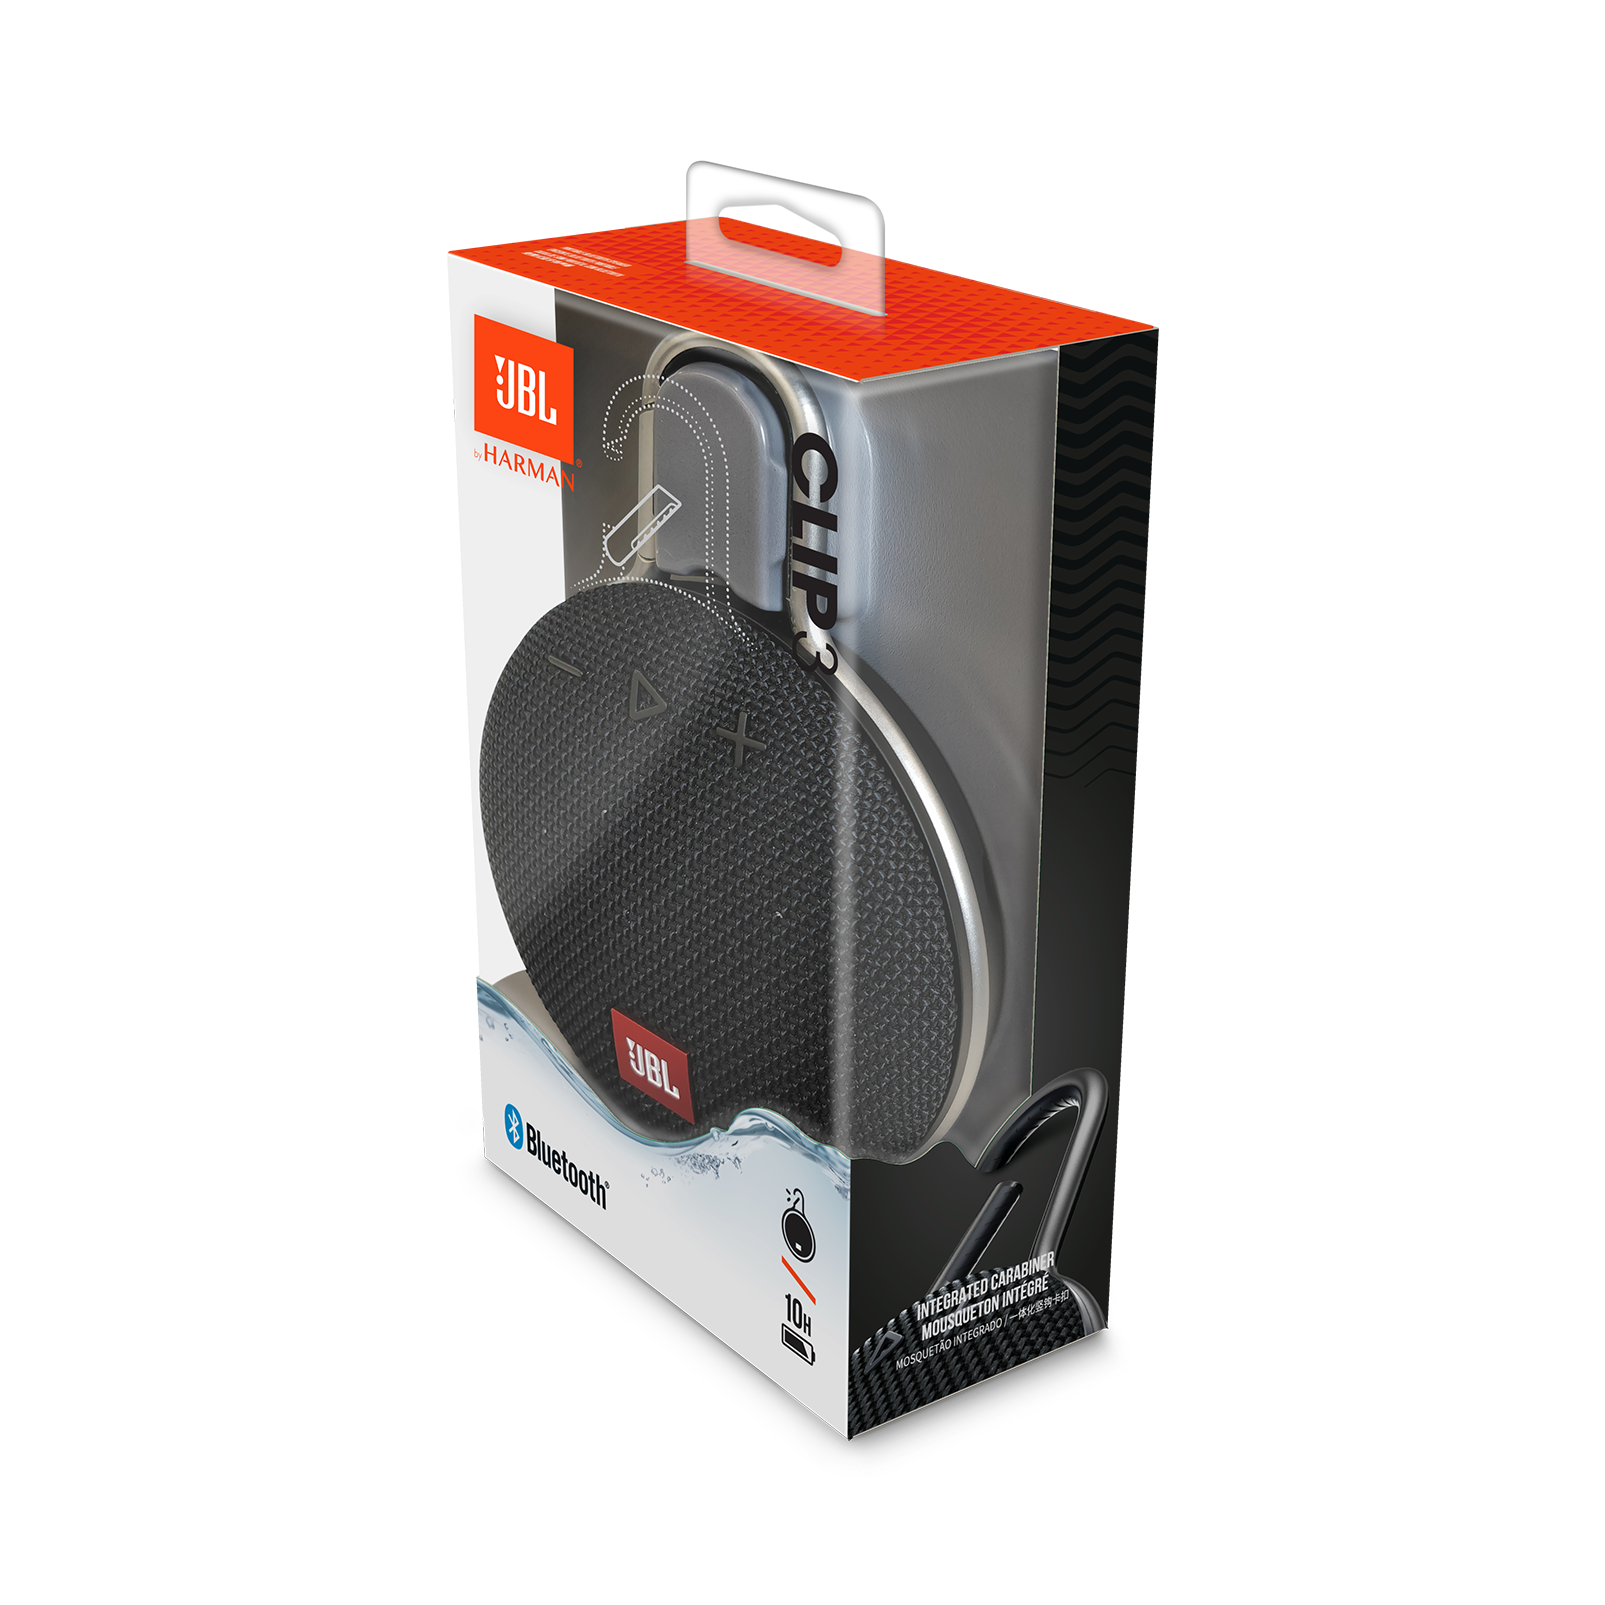 Jbl Clip 3 Portable Bluetooth Speaker Sound Powered Telephone Wiring Diagram Manuals Downloads